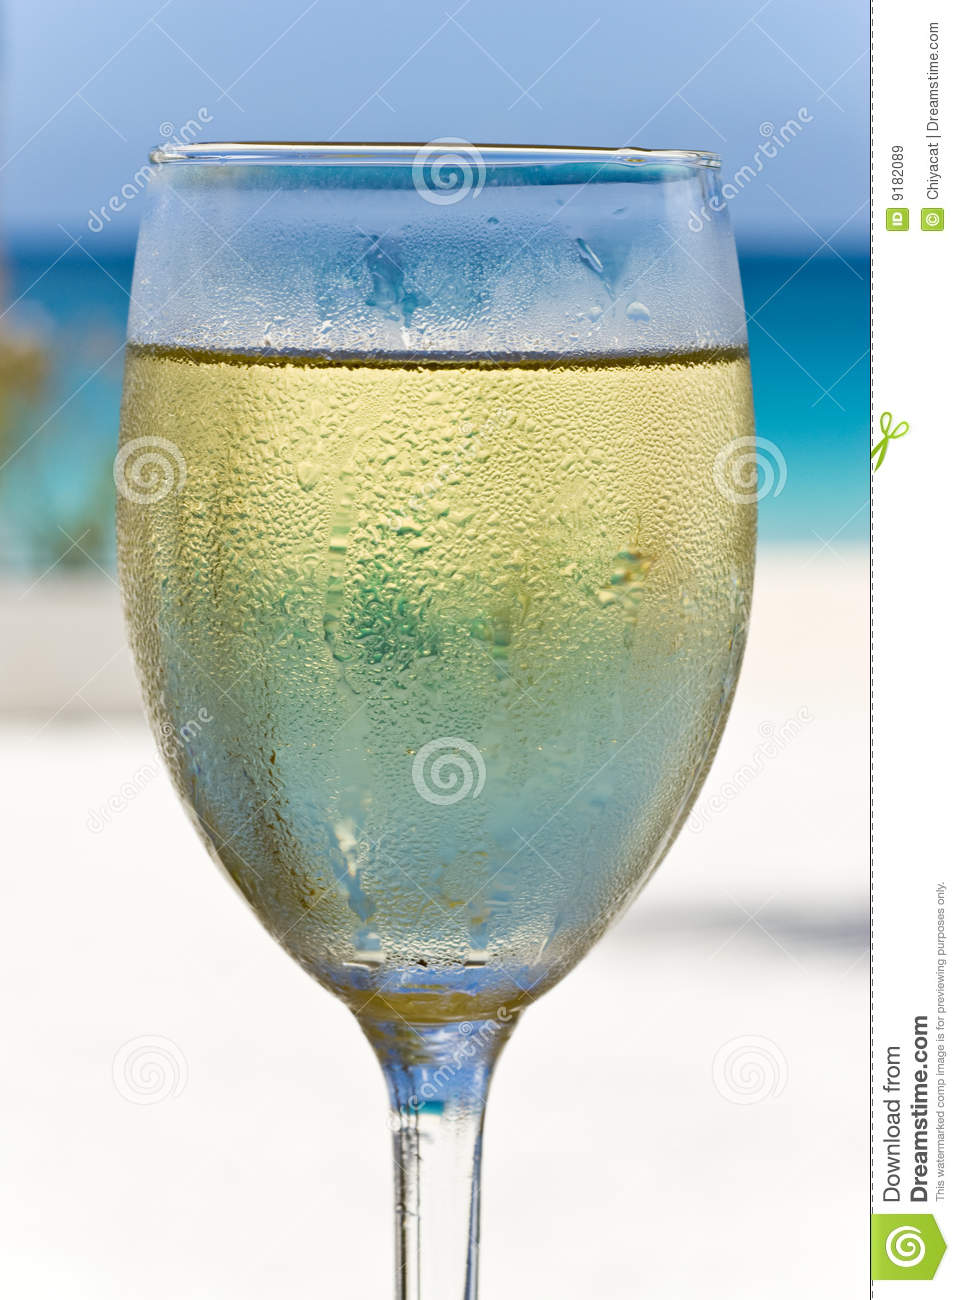 Glass of White Wine on the Beach